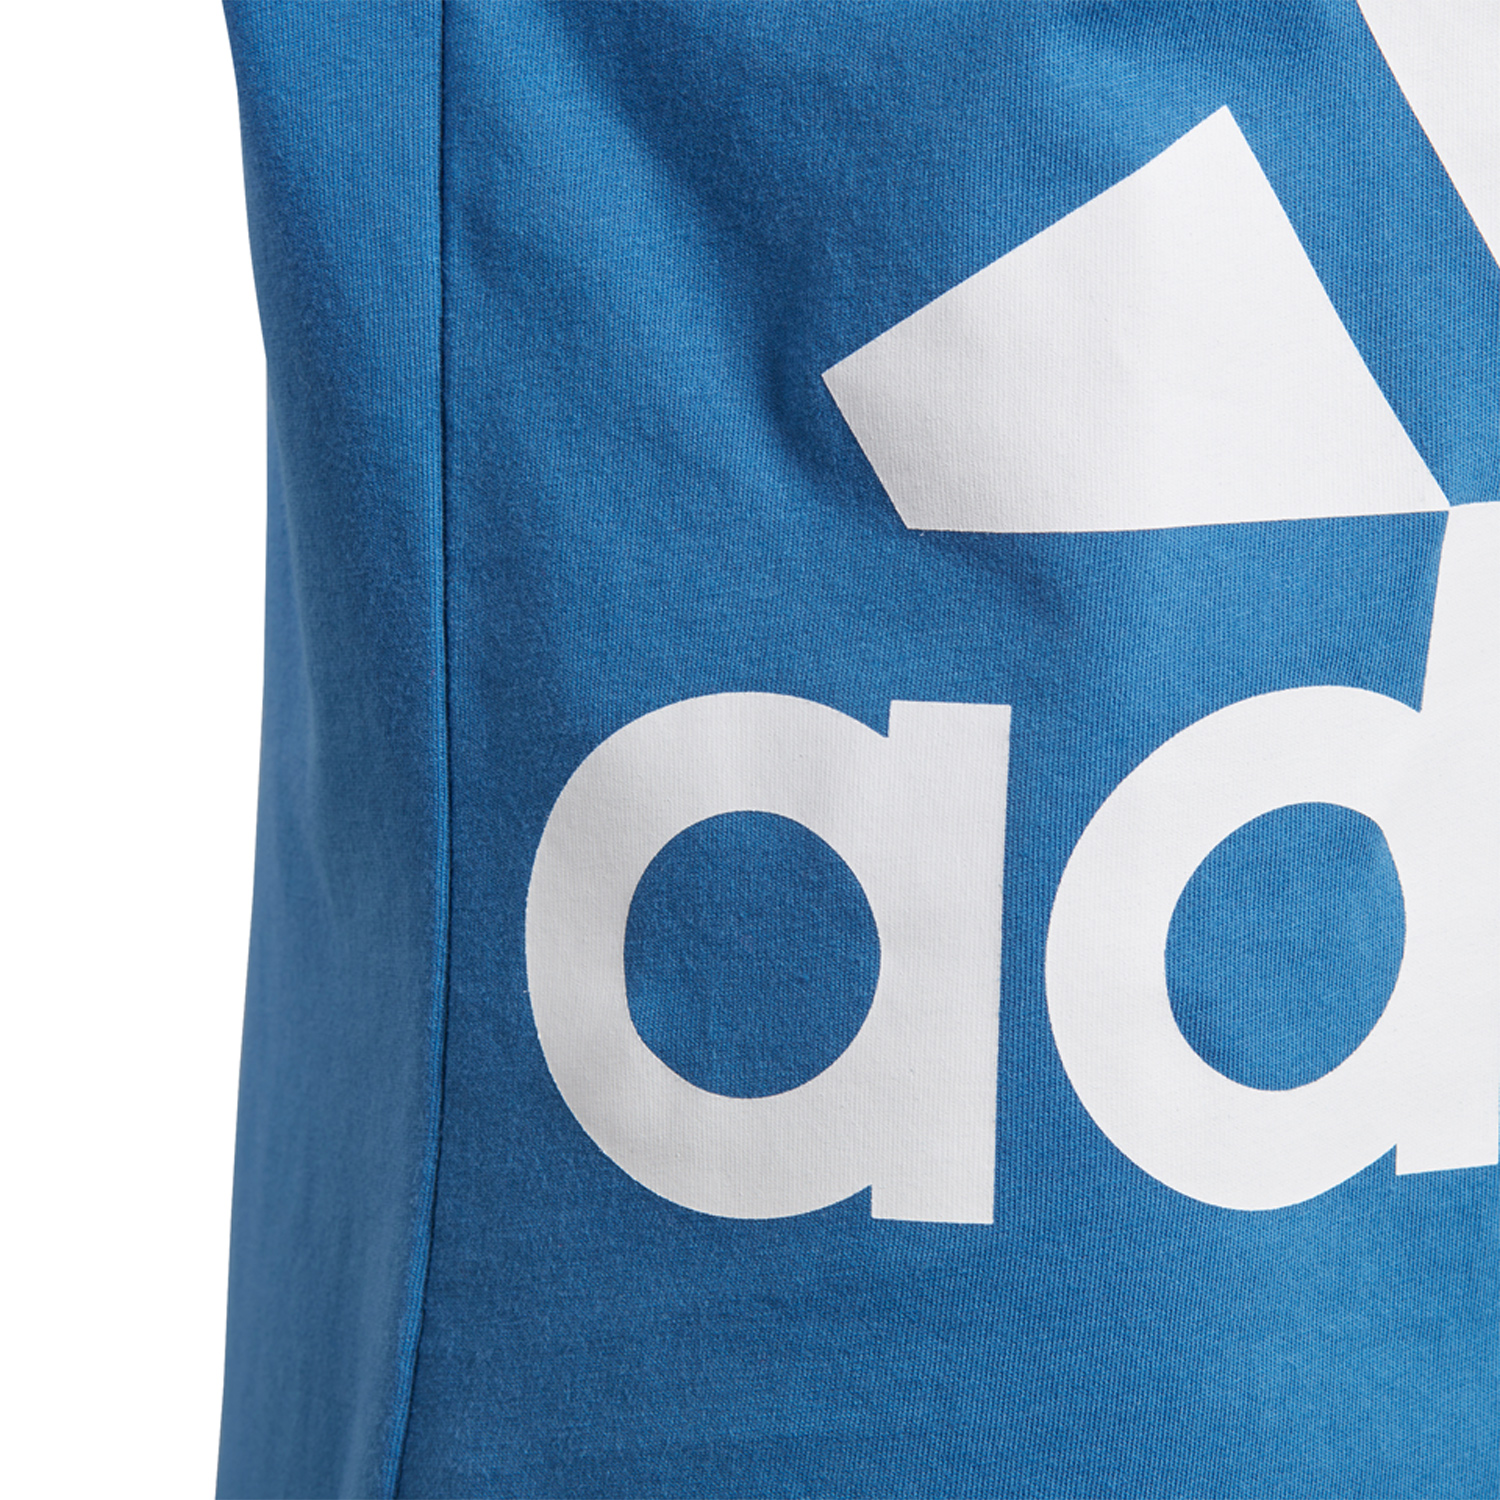 adidas Essentials Big Logo Jungen Kinder T-Shirt – Bild 3